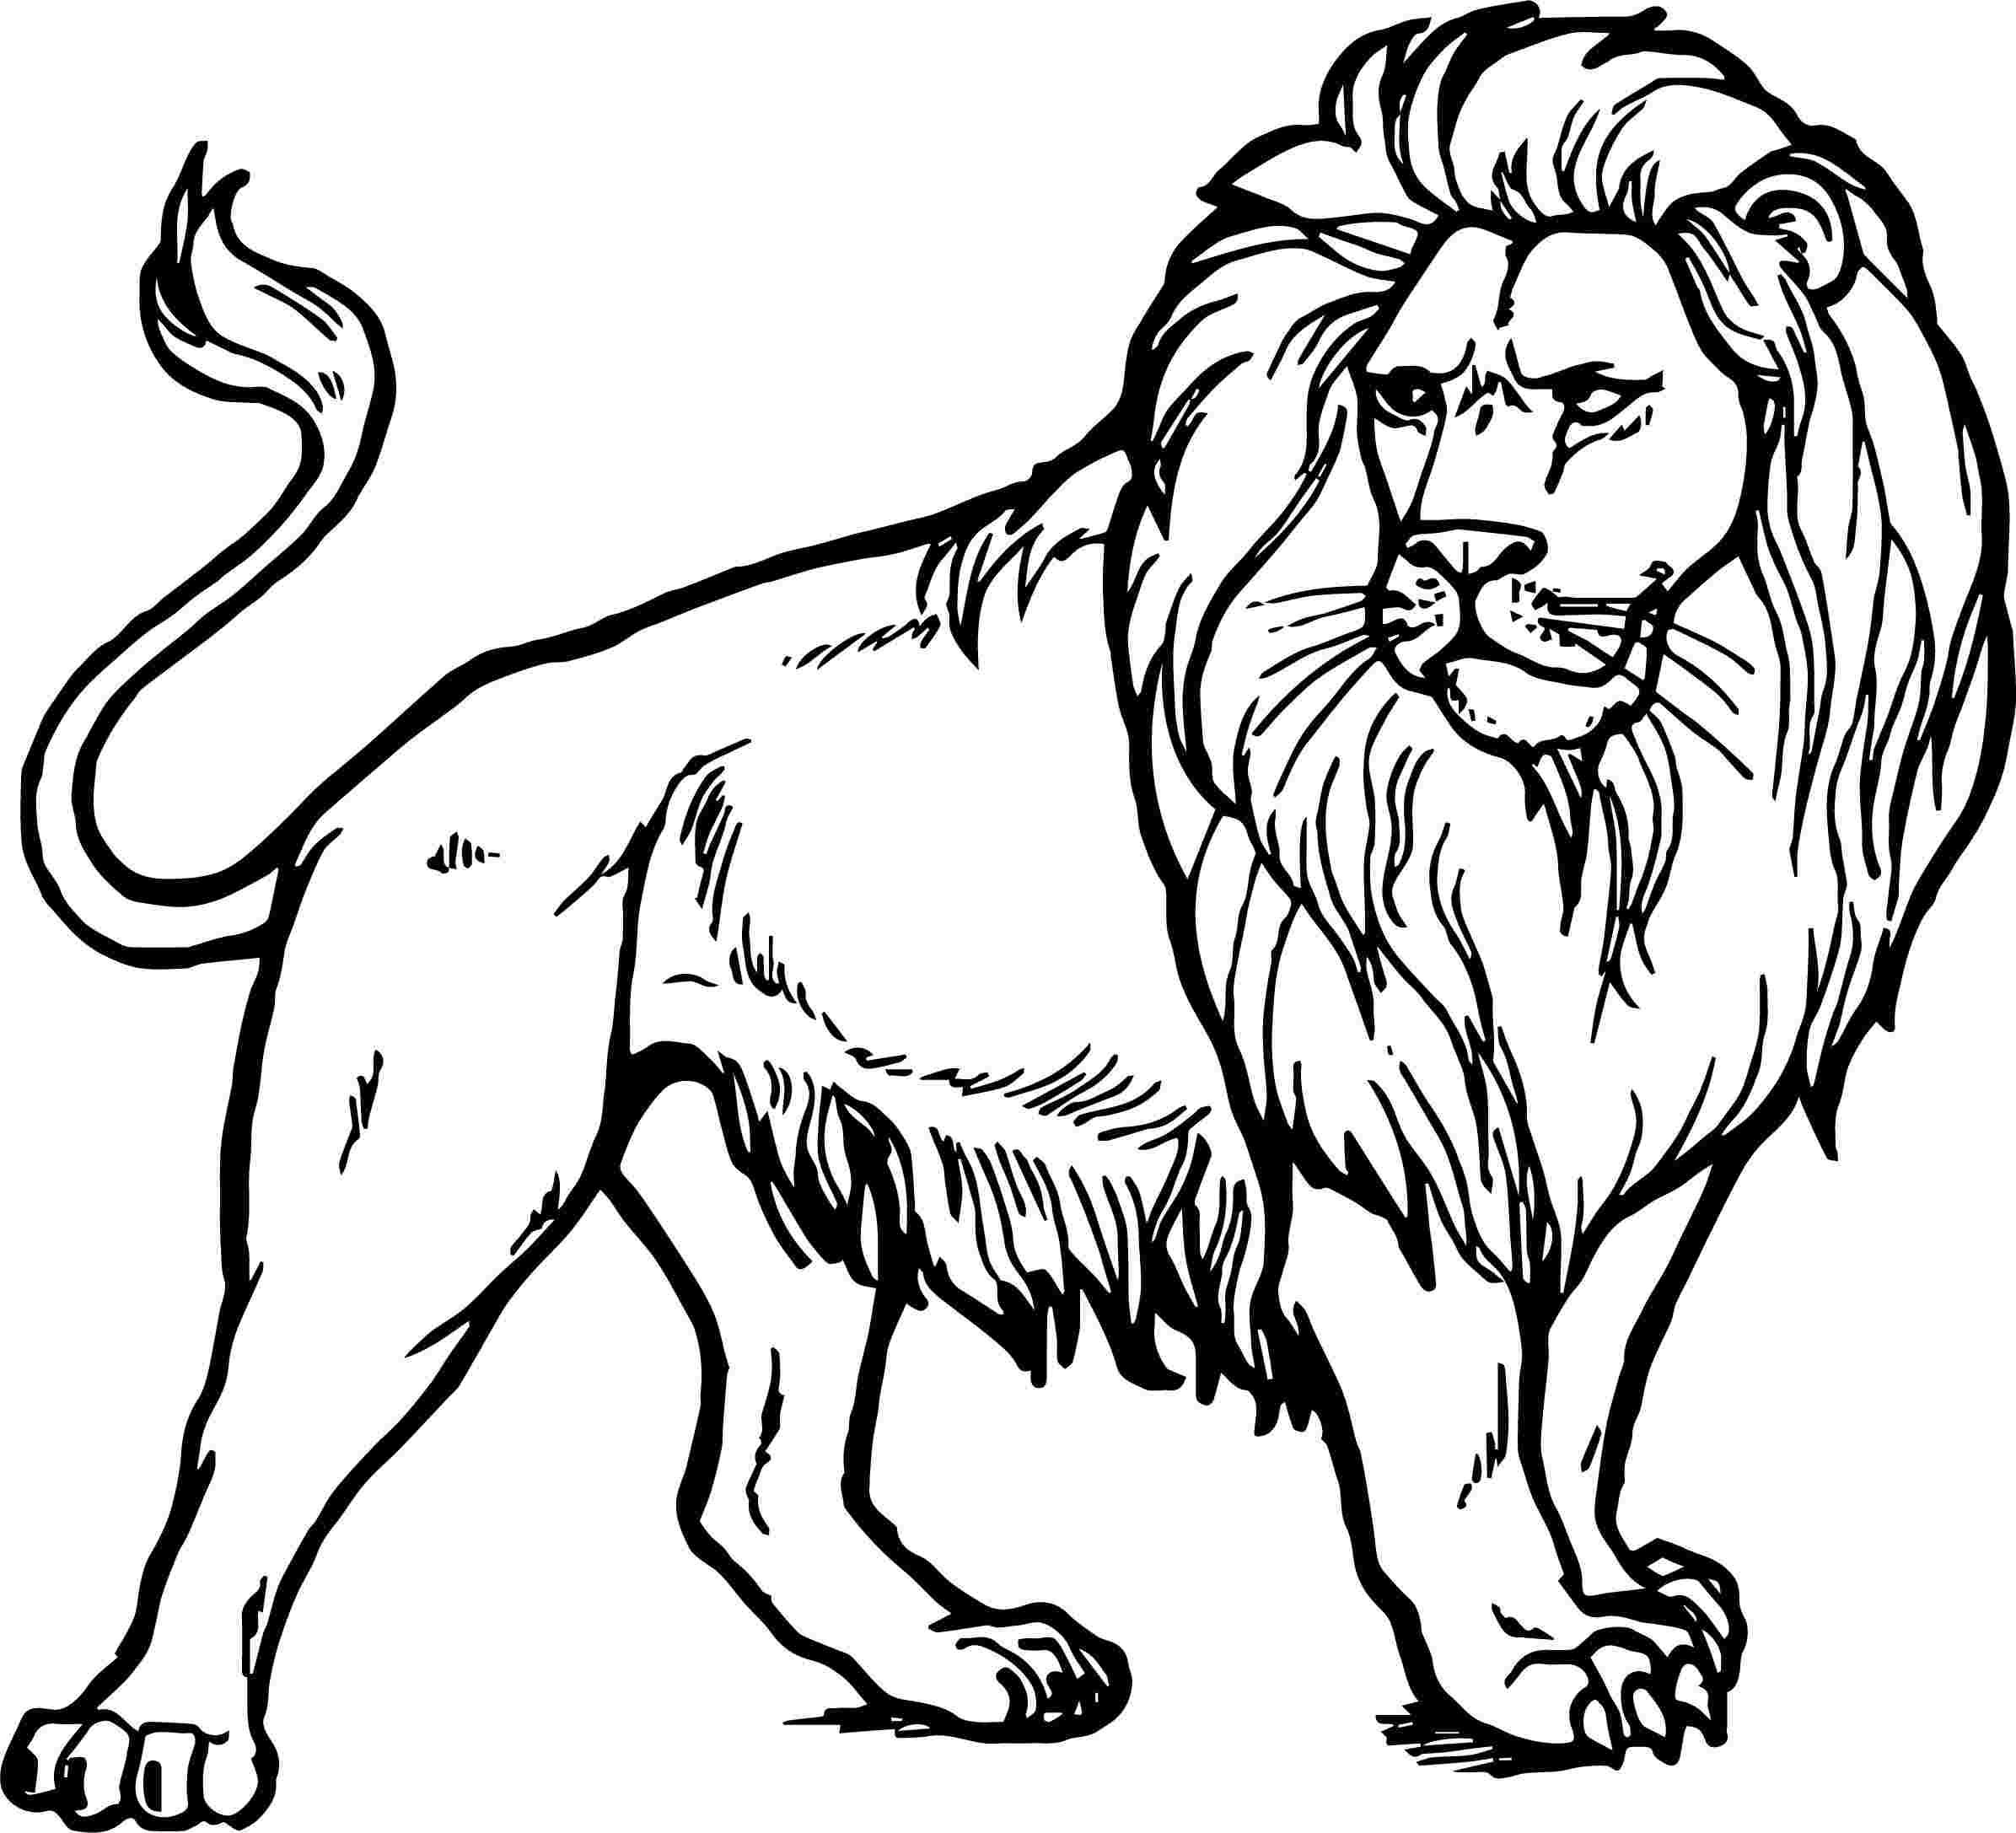 picture of a lion to color free easy to print lion coloring pages tulamama lion color a picture of to